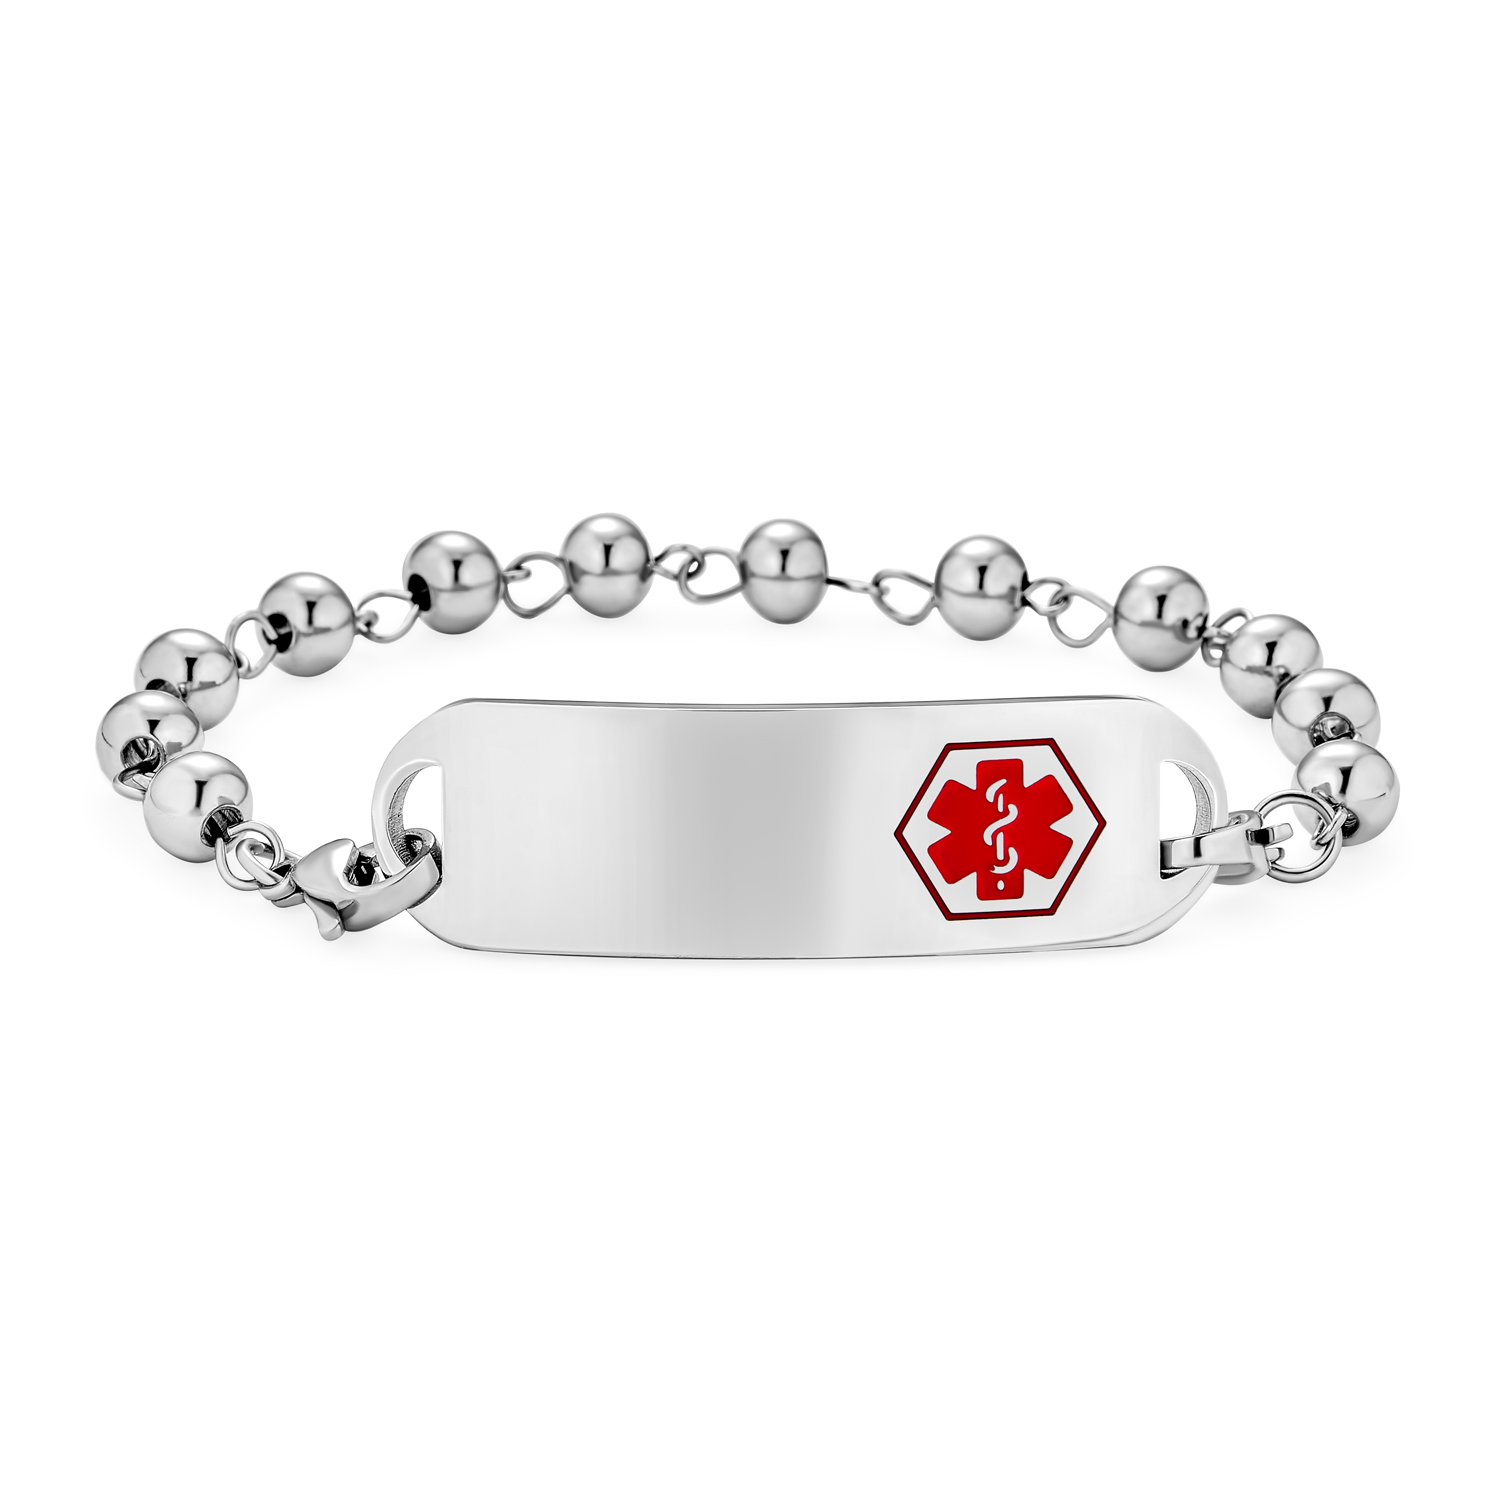 8 Includes FREE Engraving Stainless Steel Customizable Asthma Medical Alert Bracelet